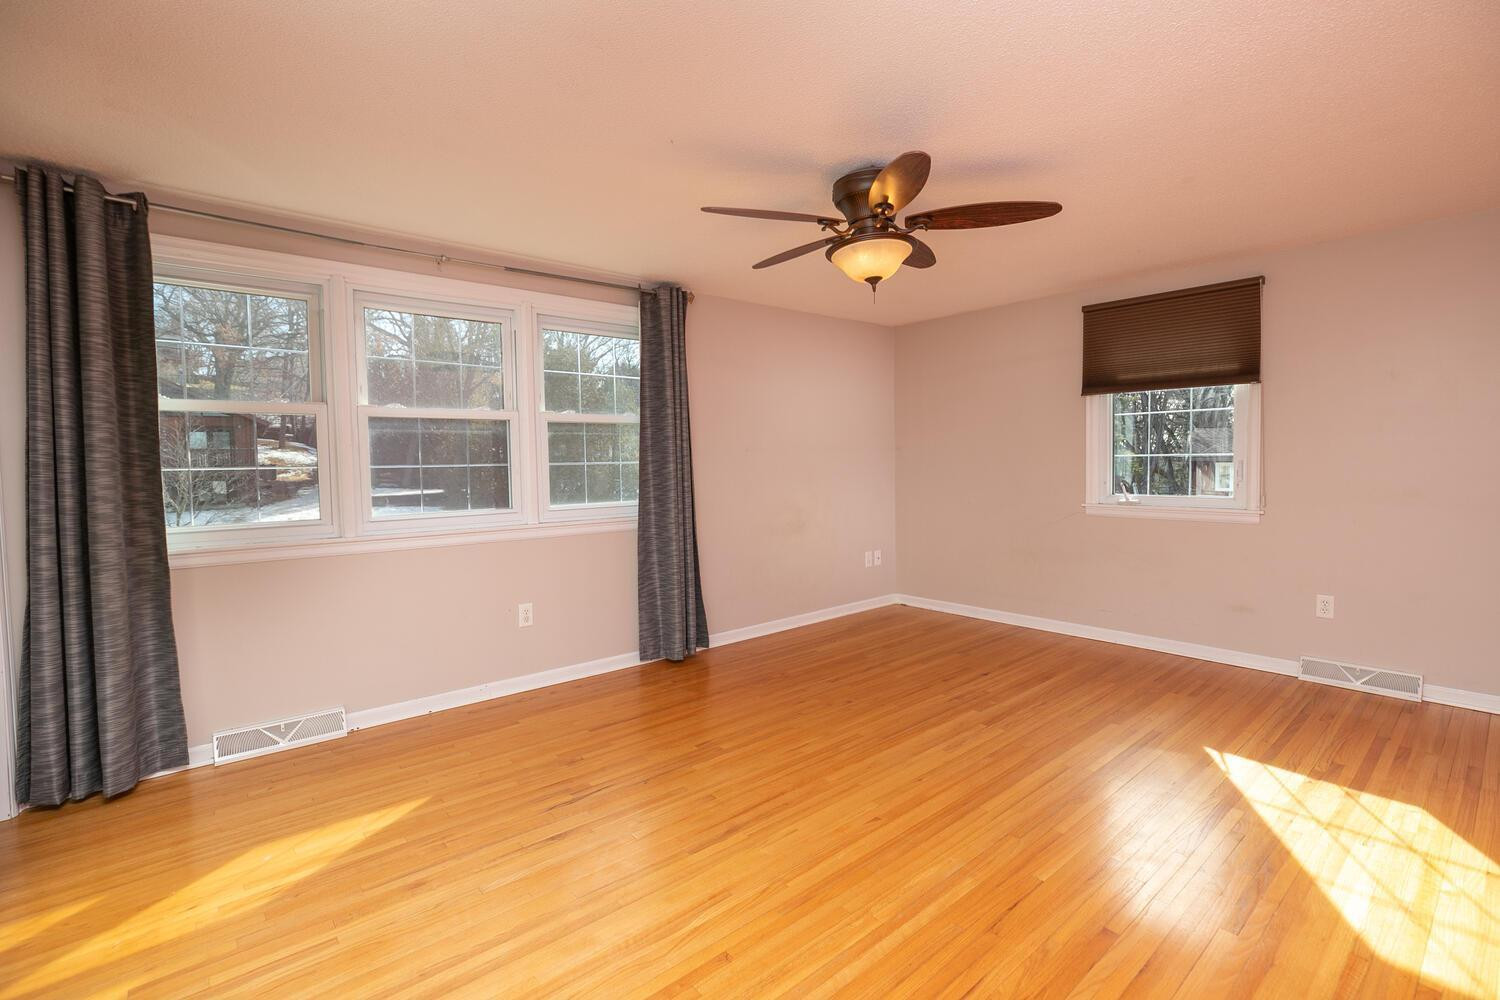 Upper Level Master BR with real oak flooring